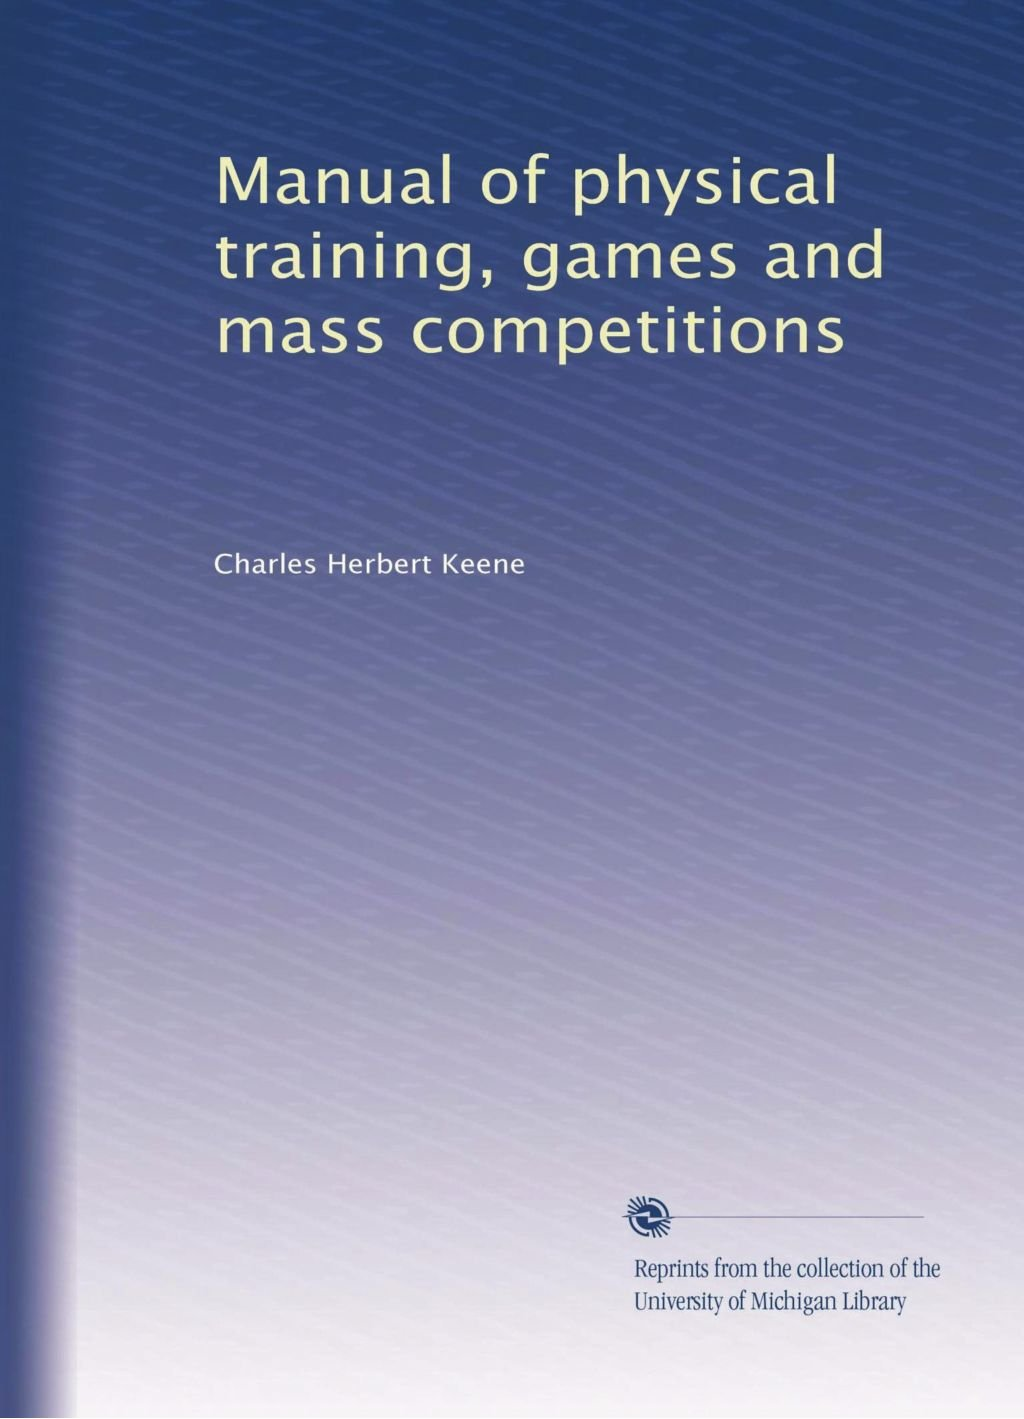 Manual of physical training, games and mass competitions: Charles Herbert  Keene: Amazon.com: Books